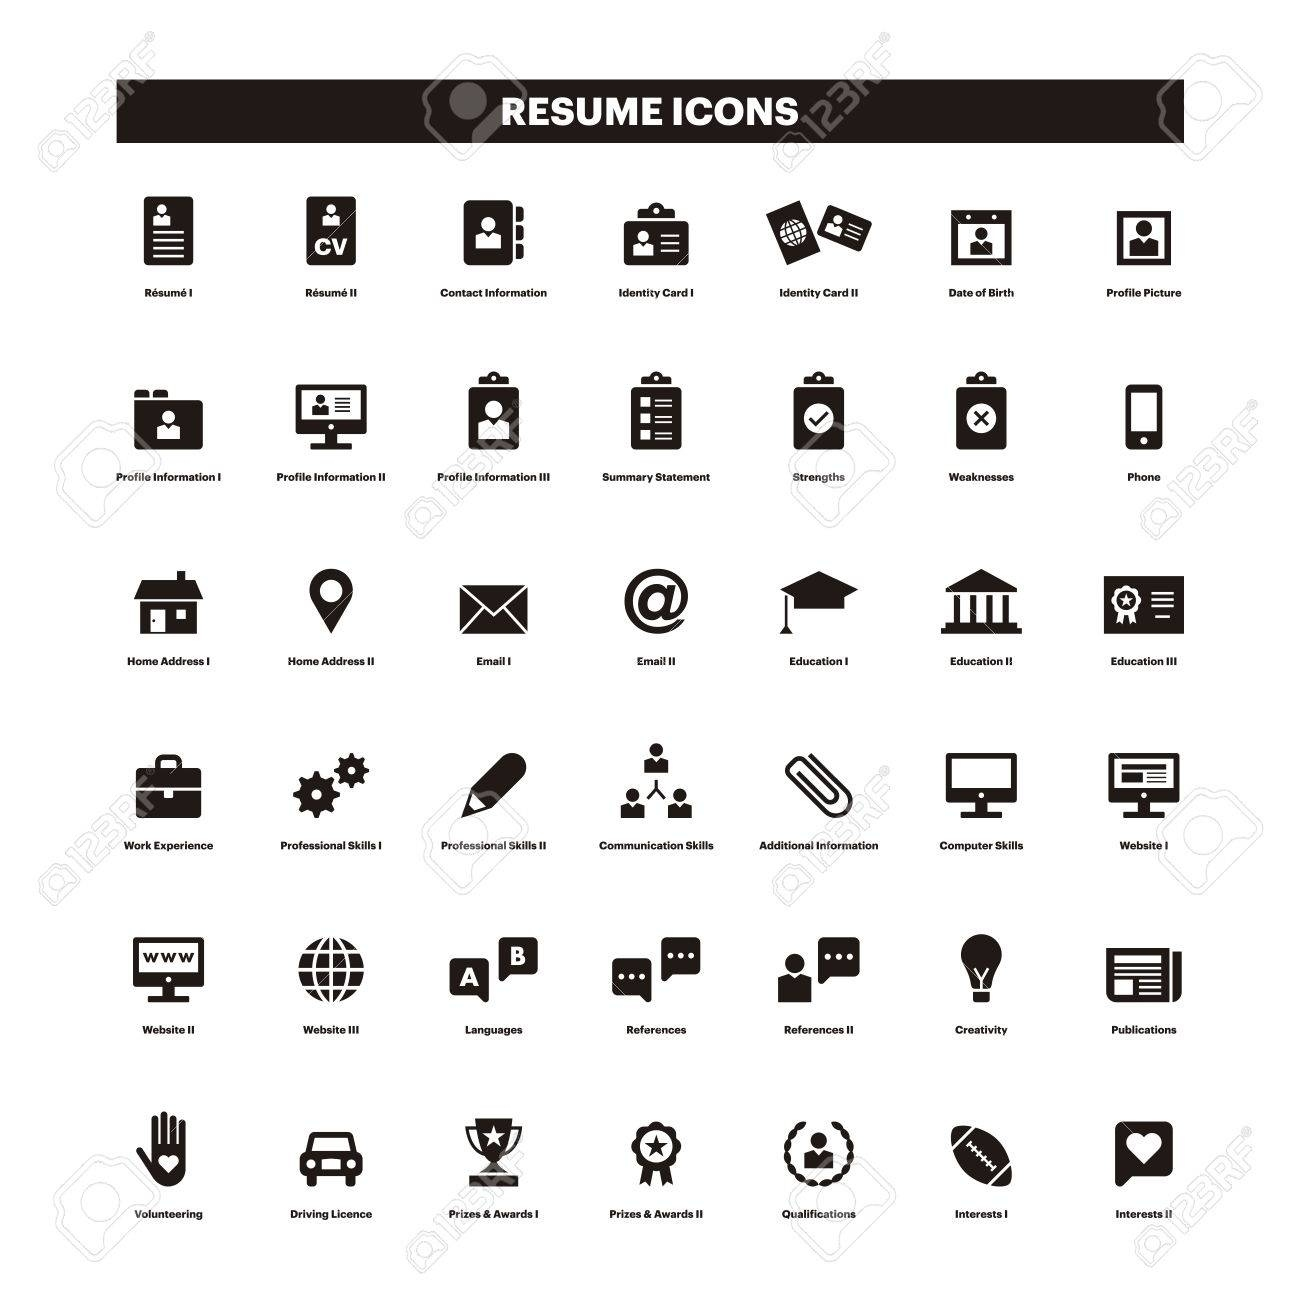 Icons For Resume.